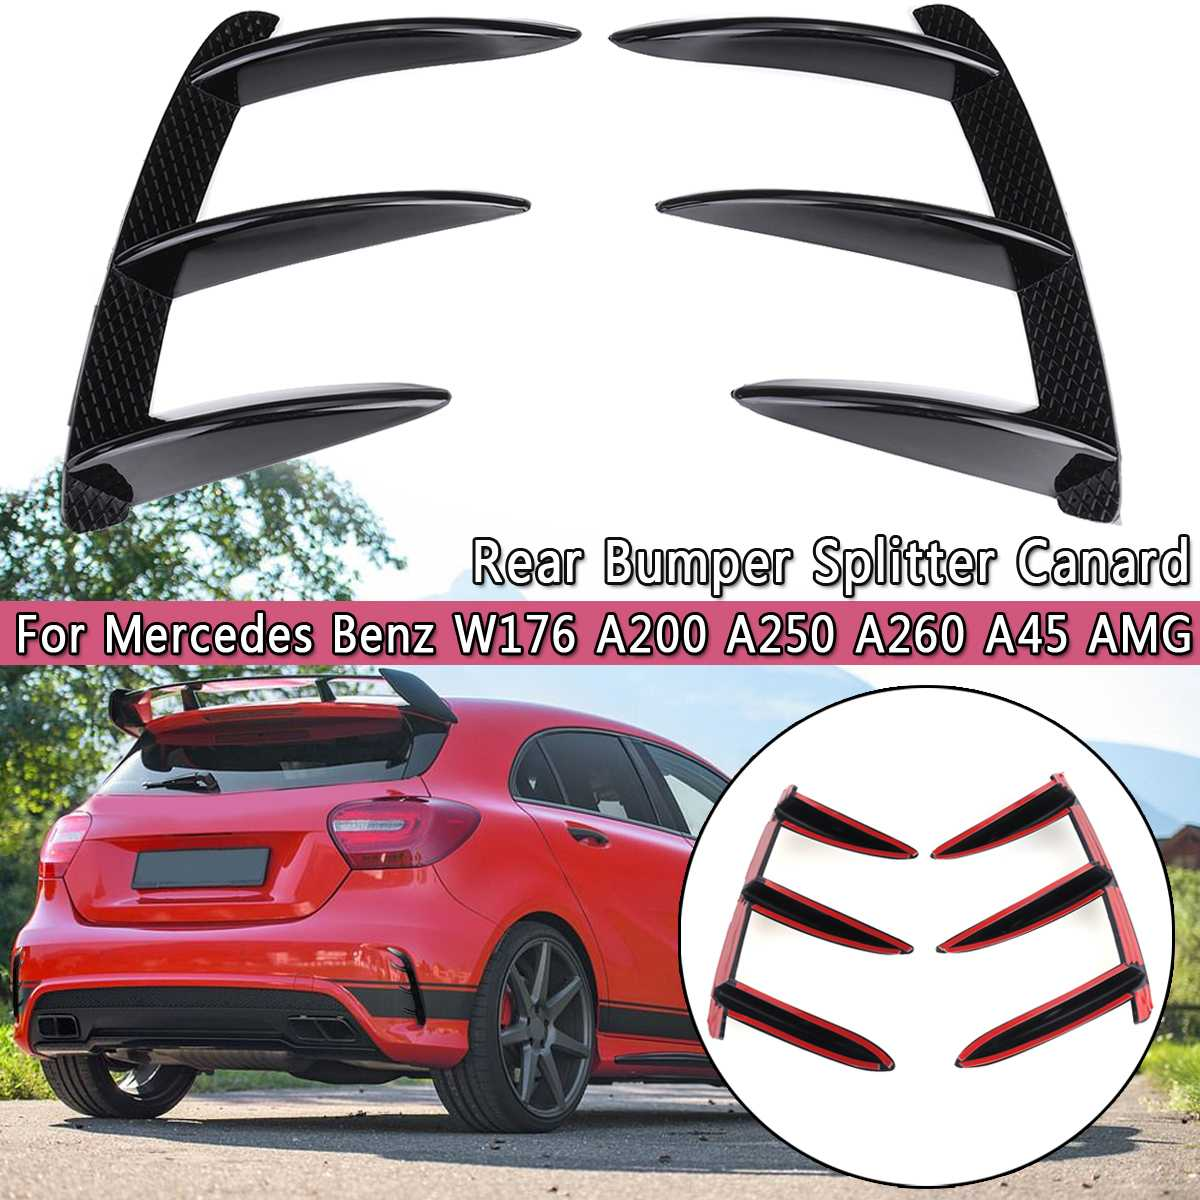 1Pair Car Black ABS Rear Bumper Splitter Spoilers Canard For Mercedes For Benz W176 A200 A250 A260 A45 For AMG